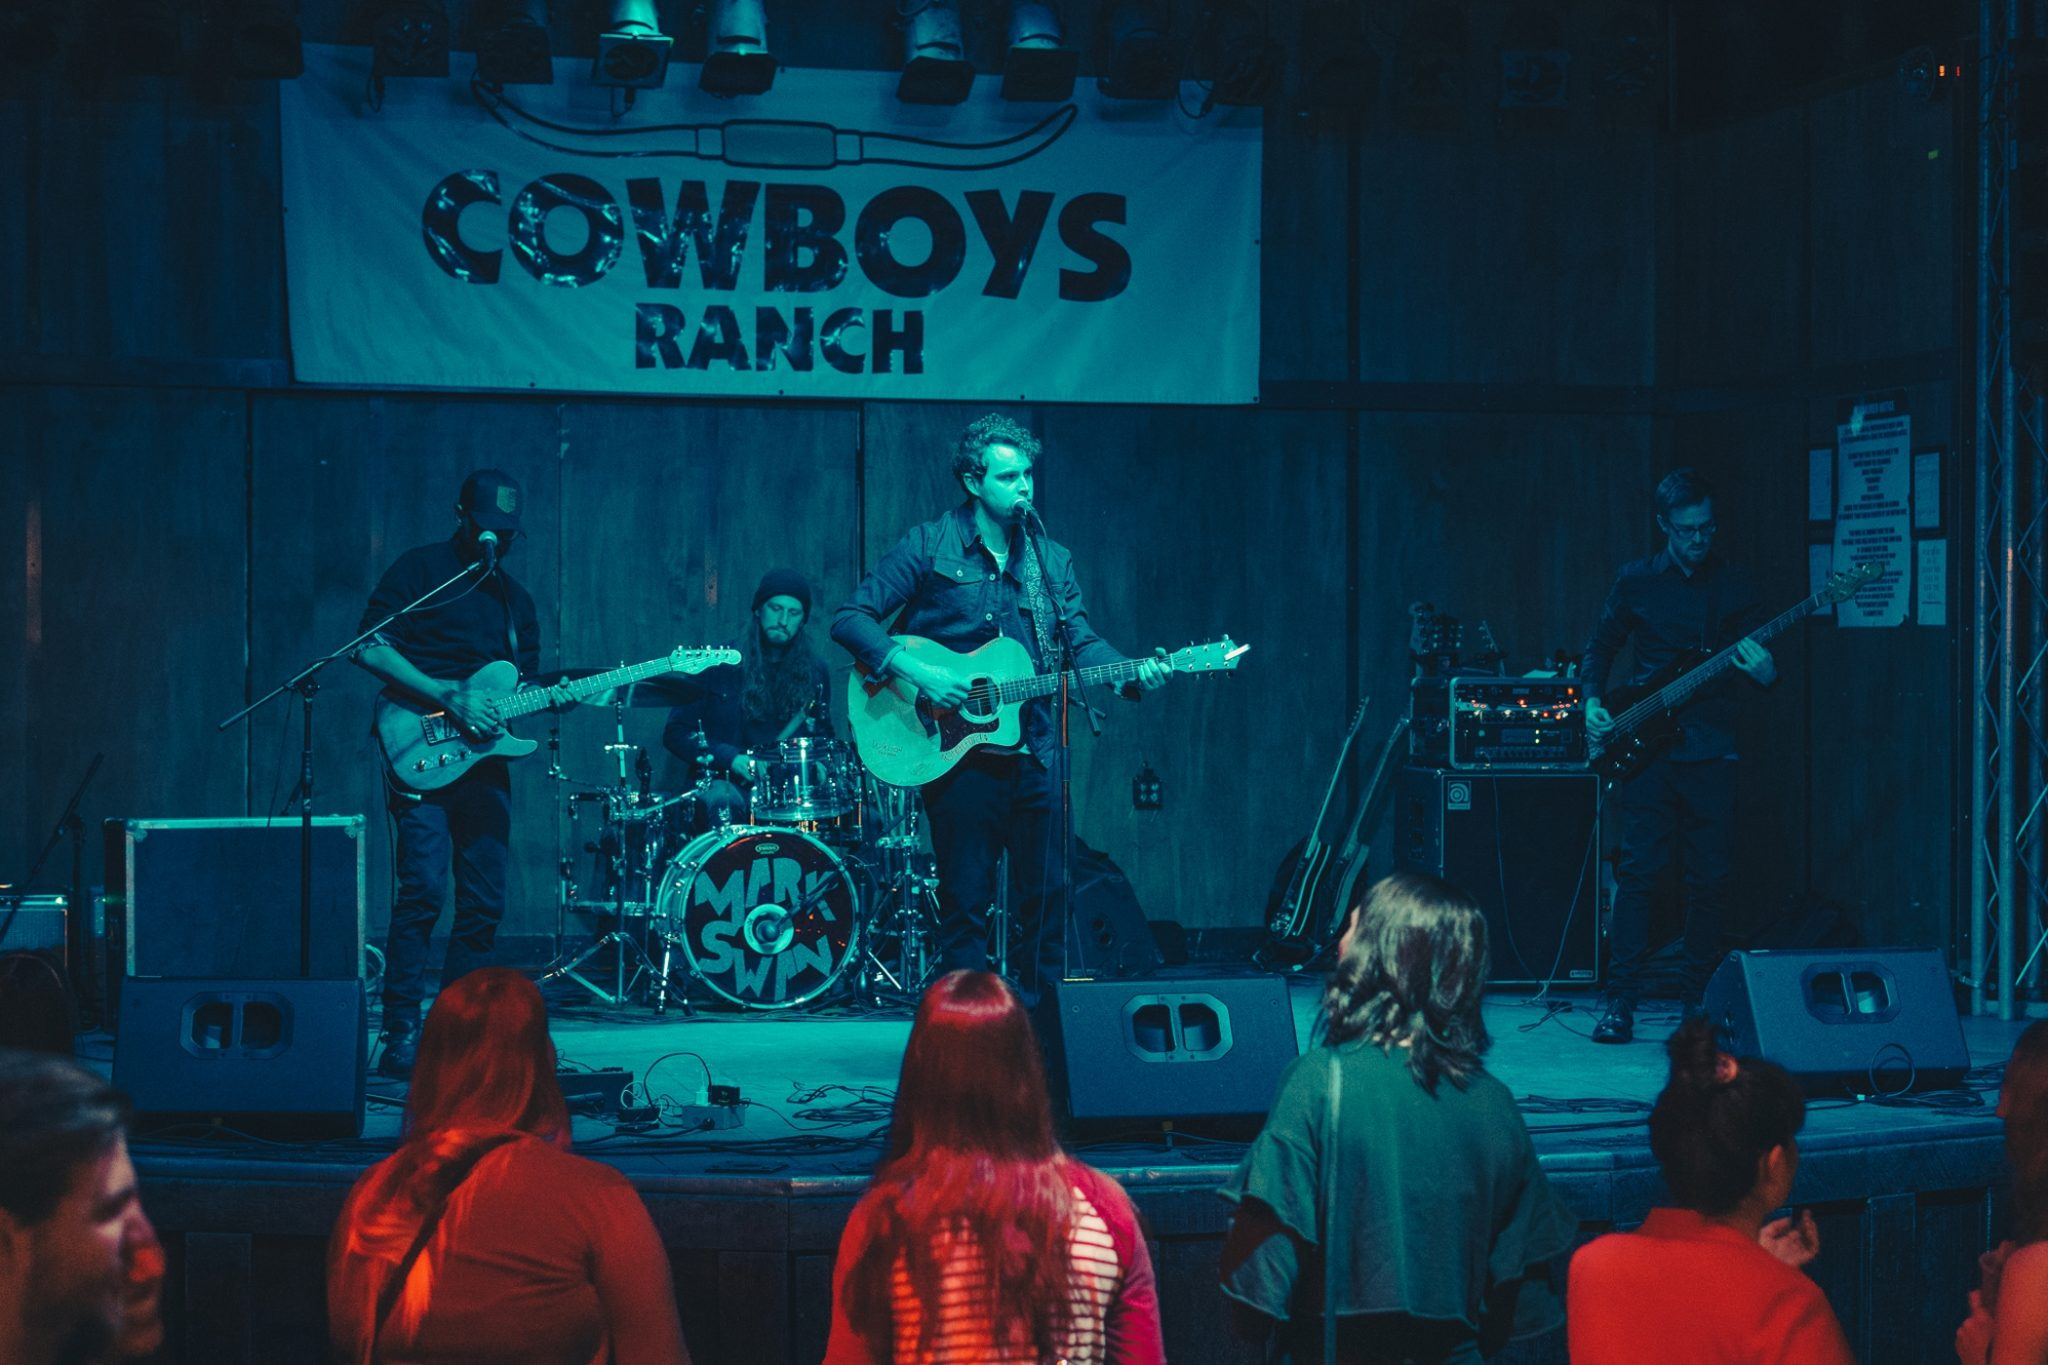 Weber and co. playing live at Cowboys. Photo by Brendan Beamish.